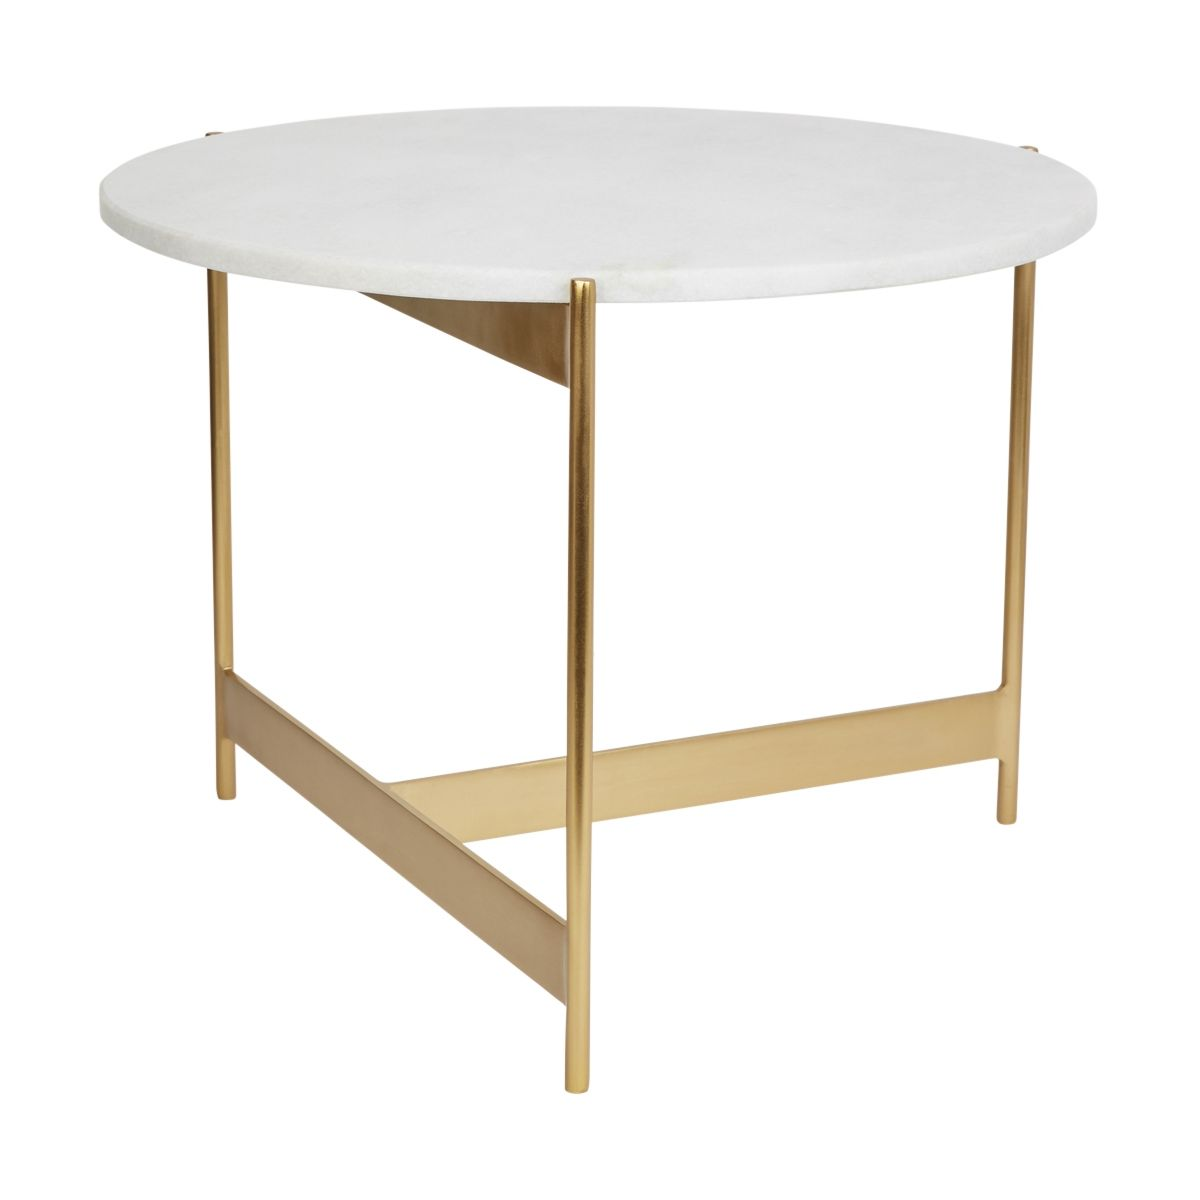 Table Basse Omarbre Marbre Metale Et Marbre Blanc 38 X O50 Cm Taille Taille Unique Table Furniture Coffee Table